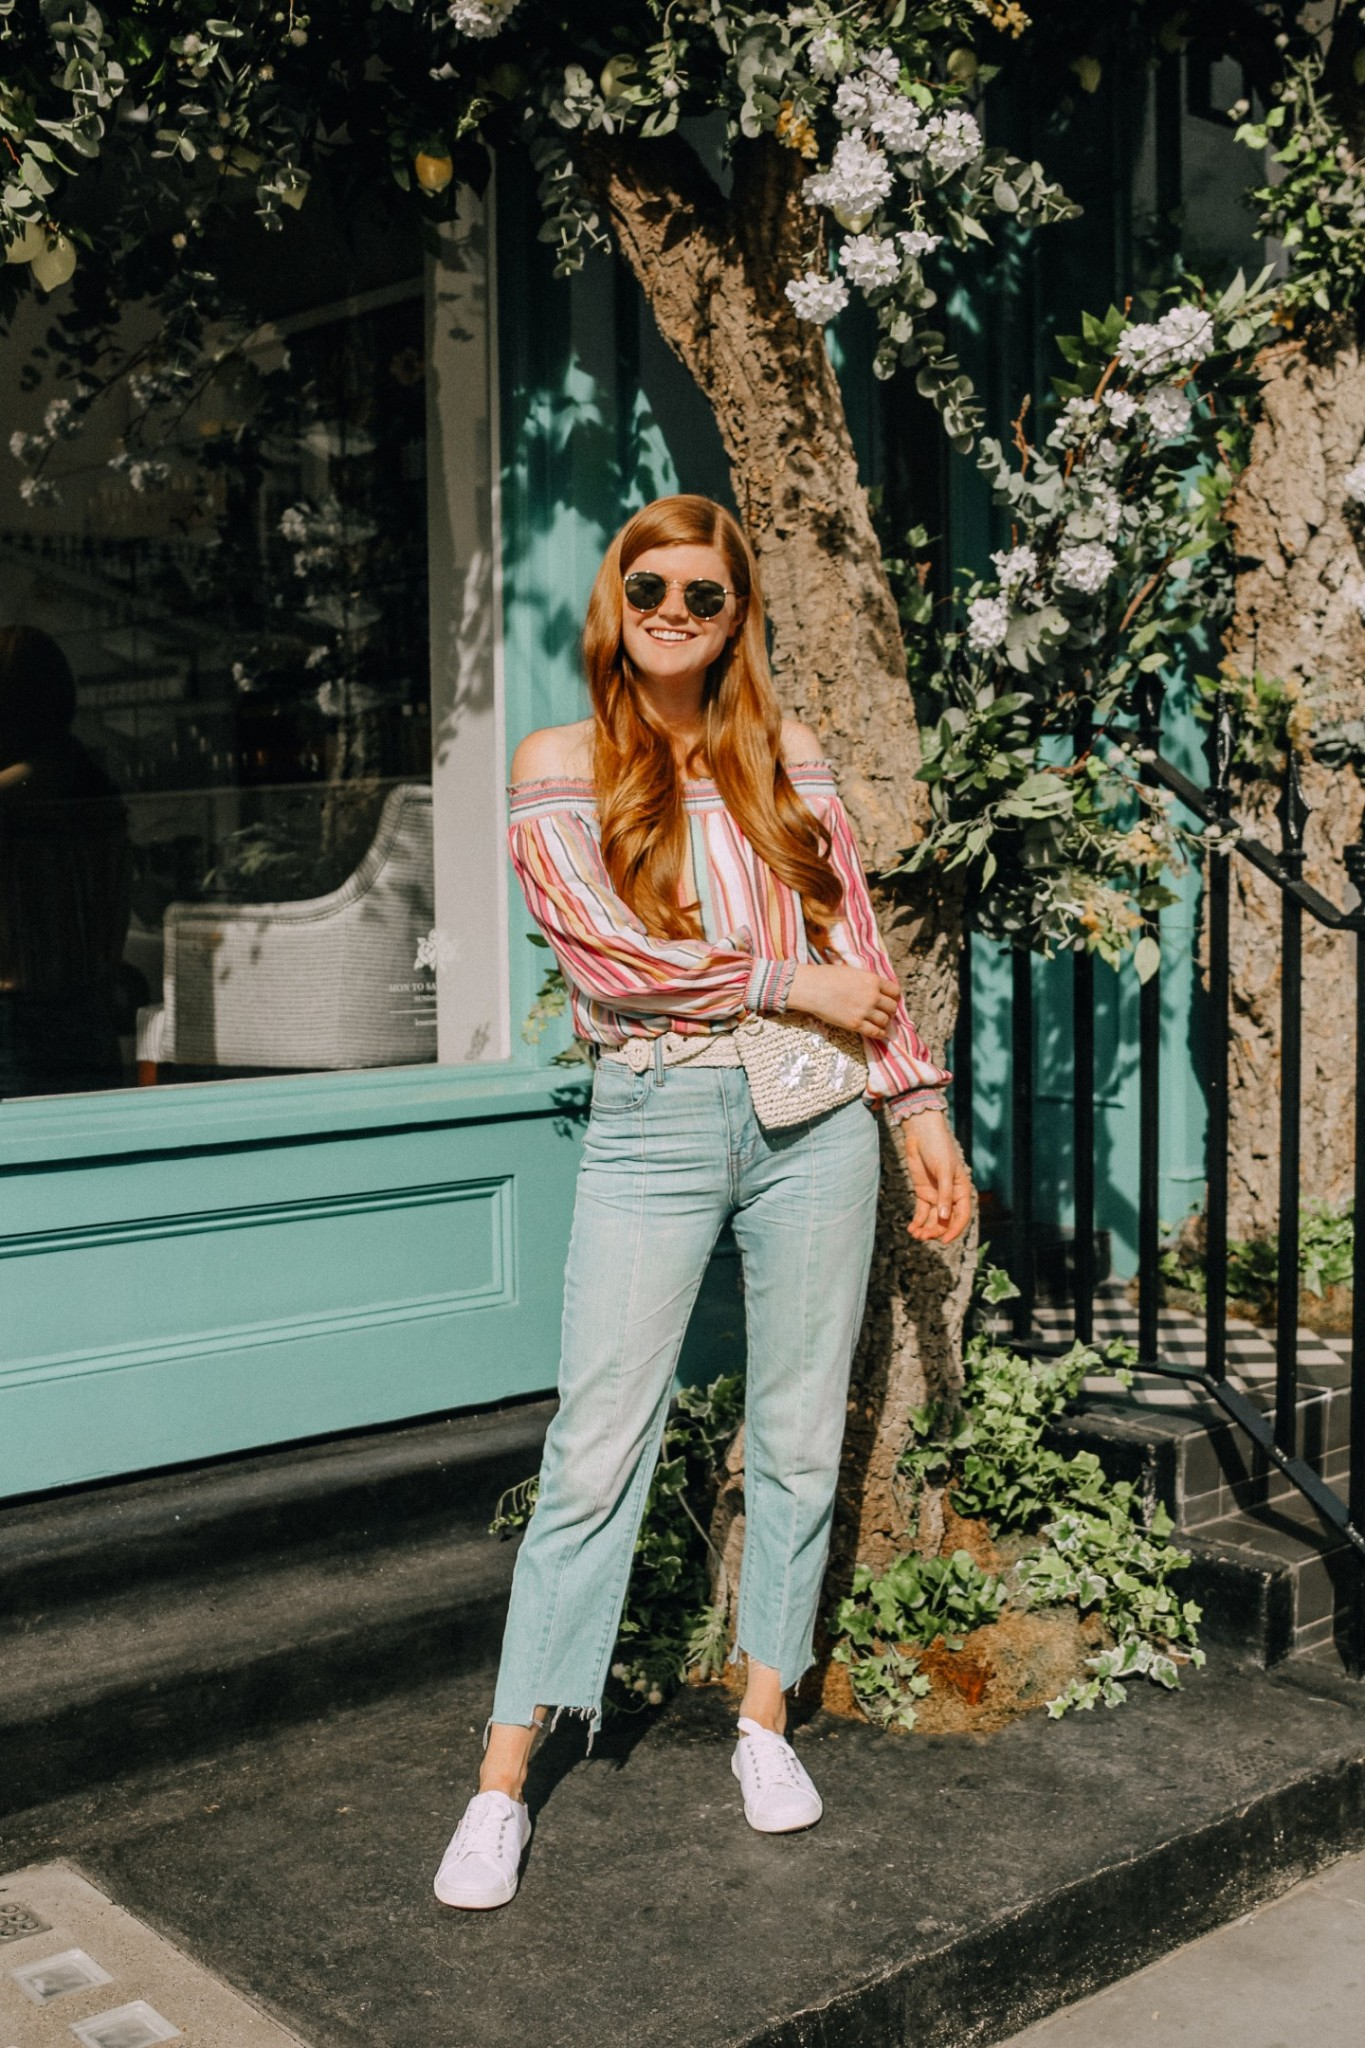 Lifestyle blogger Mollie Moore shares tips on how to style a belt bag